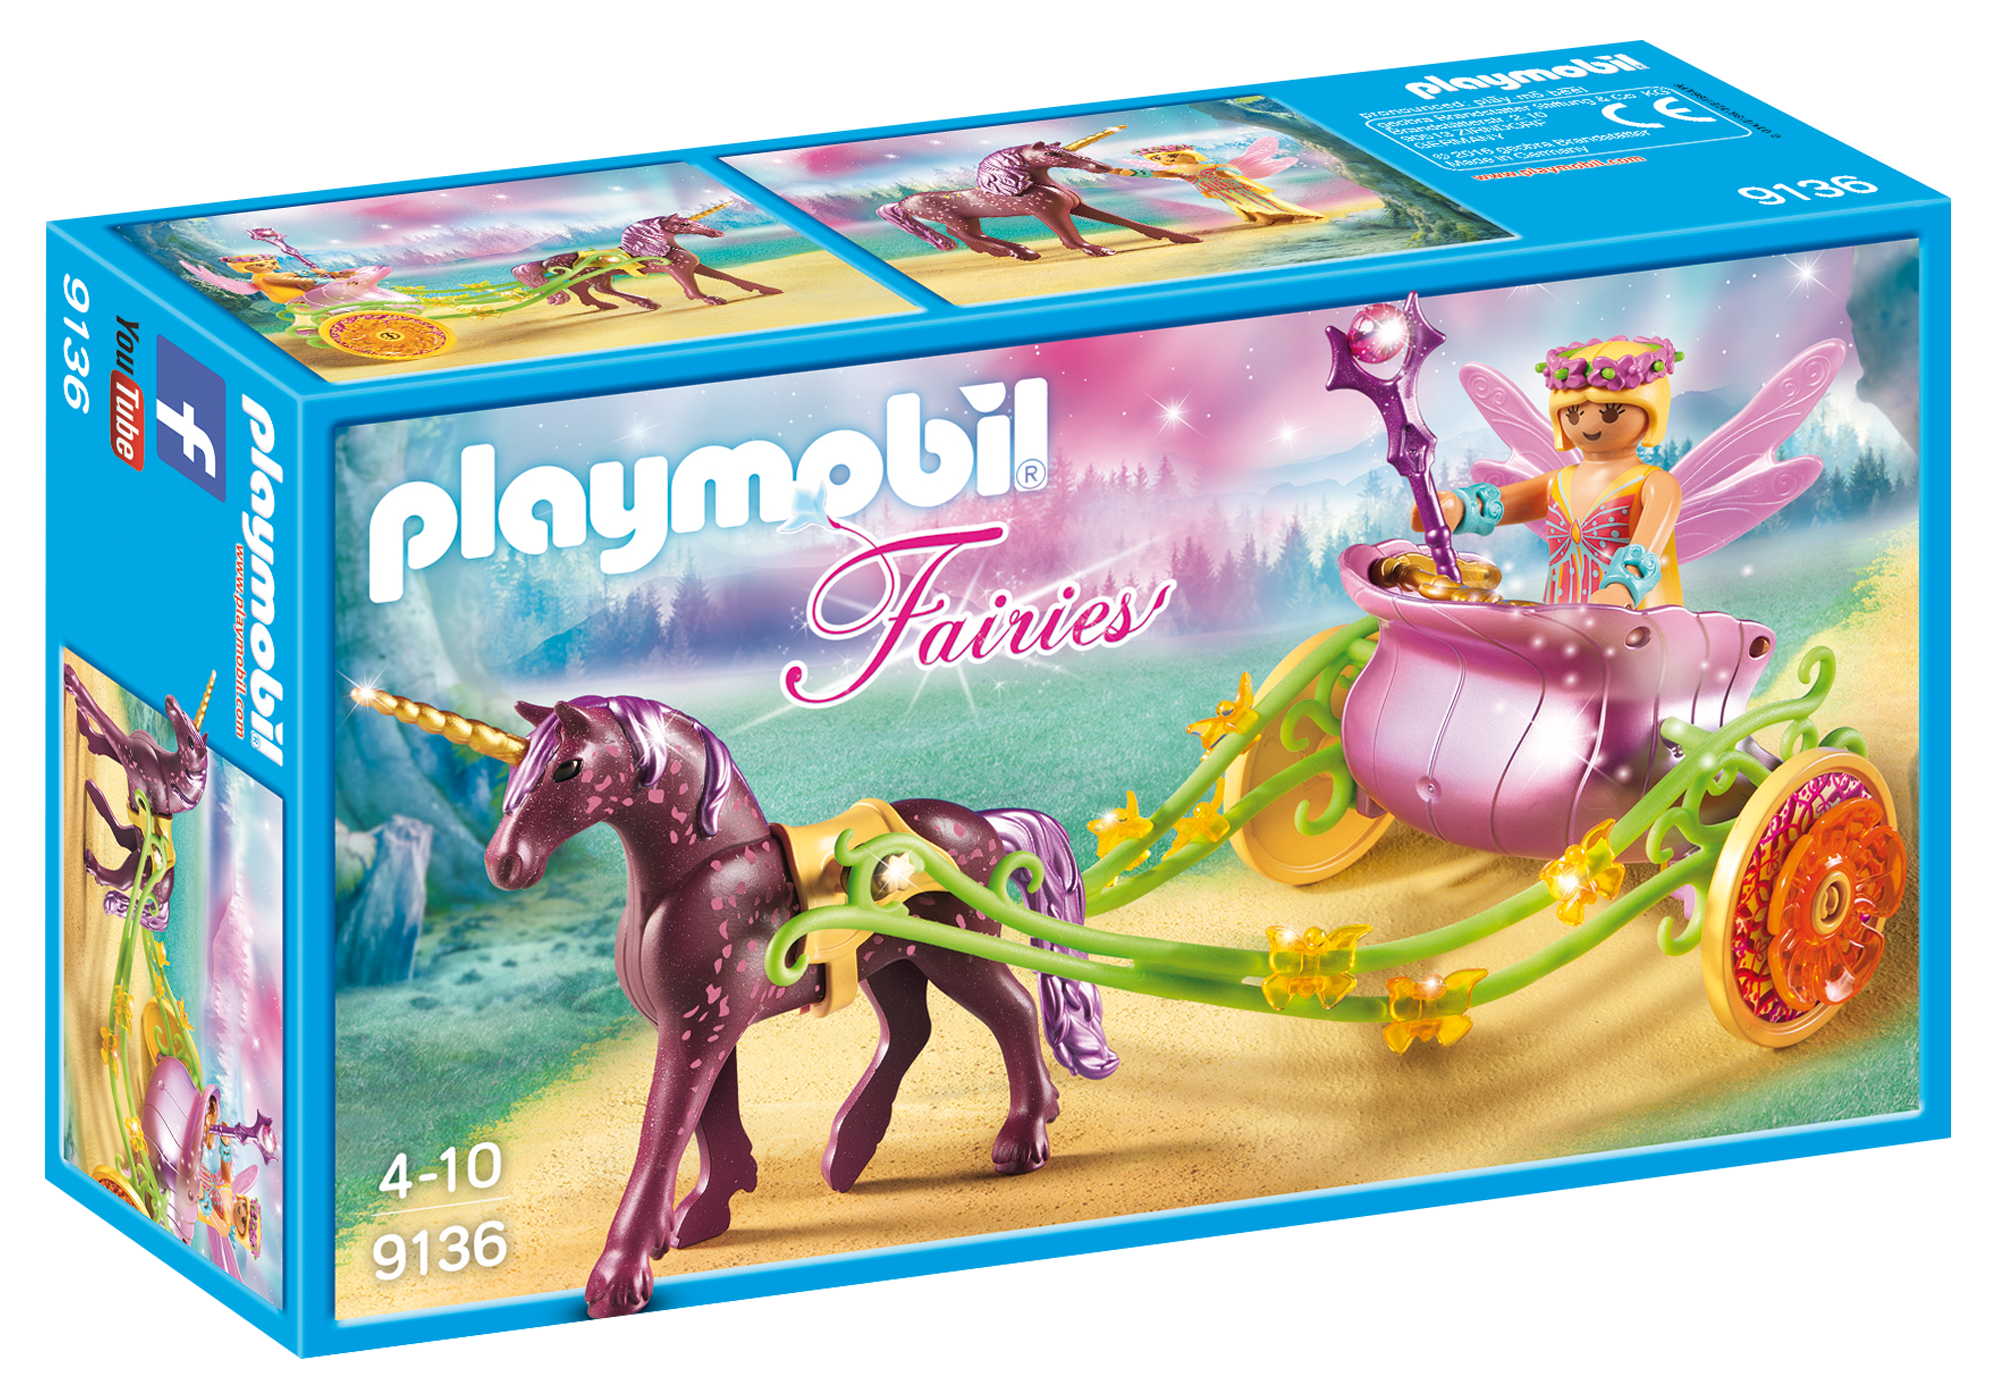 http://media.playmobil.com/i/playmobil/9136_product_box_front/Hada Flor con Carro